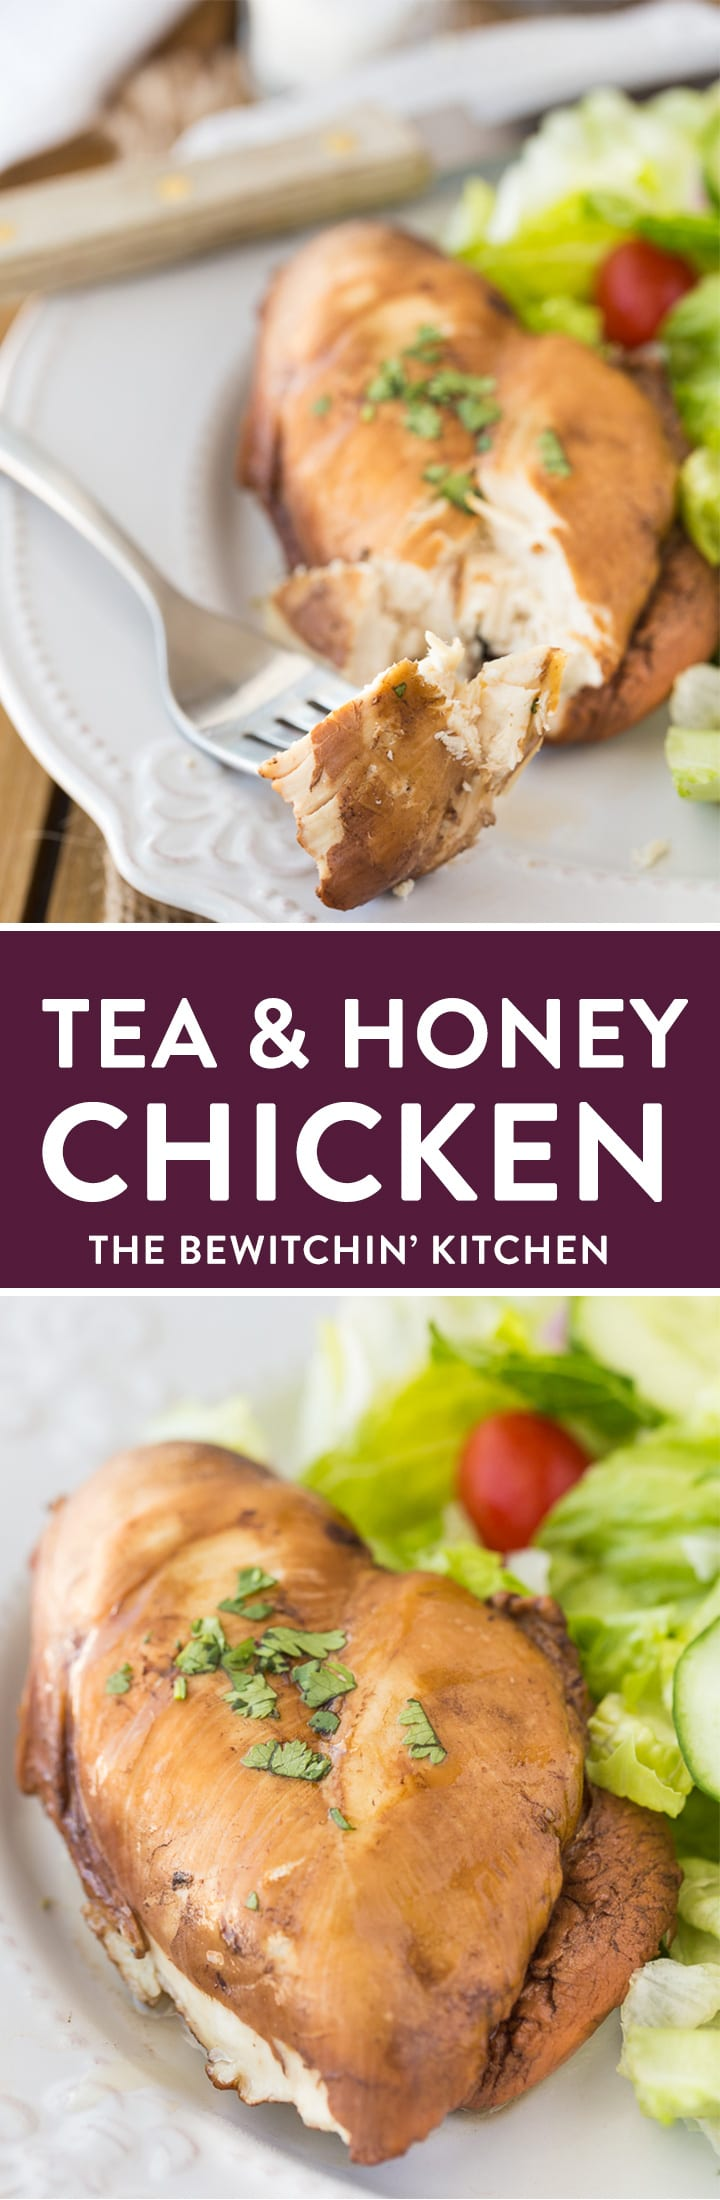 Tea and Honey Chicken. An easy, healthy, dinner recipe that is fast and makes a great weeknight meal. Chicken breasts poached in tea, honey, and soy sauce. You have to try it! 21 Day Fix approved, keto, and clean eating! #21dayfixrecipes #chickenbreastrecipes #honeychickenrecipes #poachedchickens #chickenbreastrecipes #easychickenrecipes #healthychickenrecipes #thebewitchinkitchen